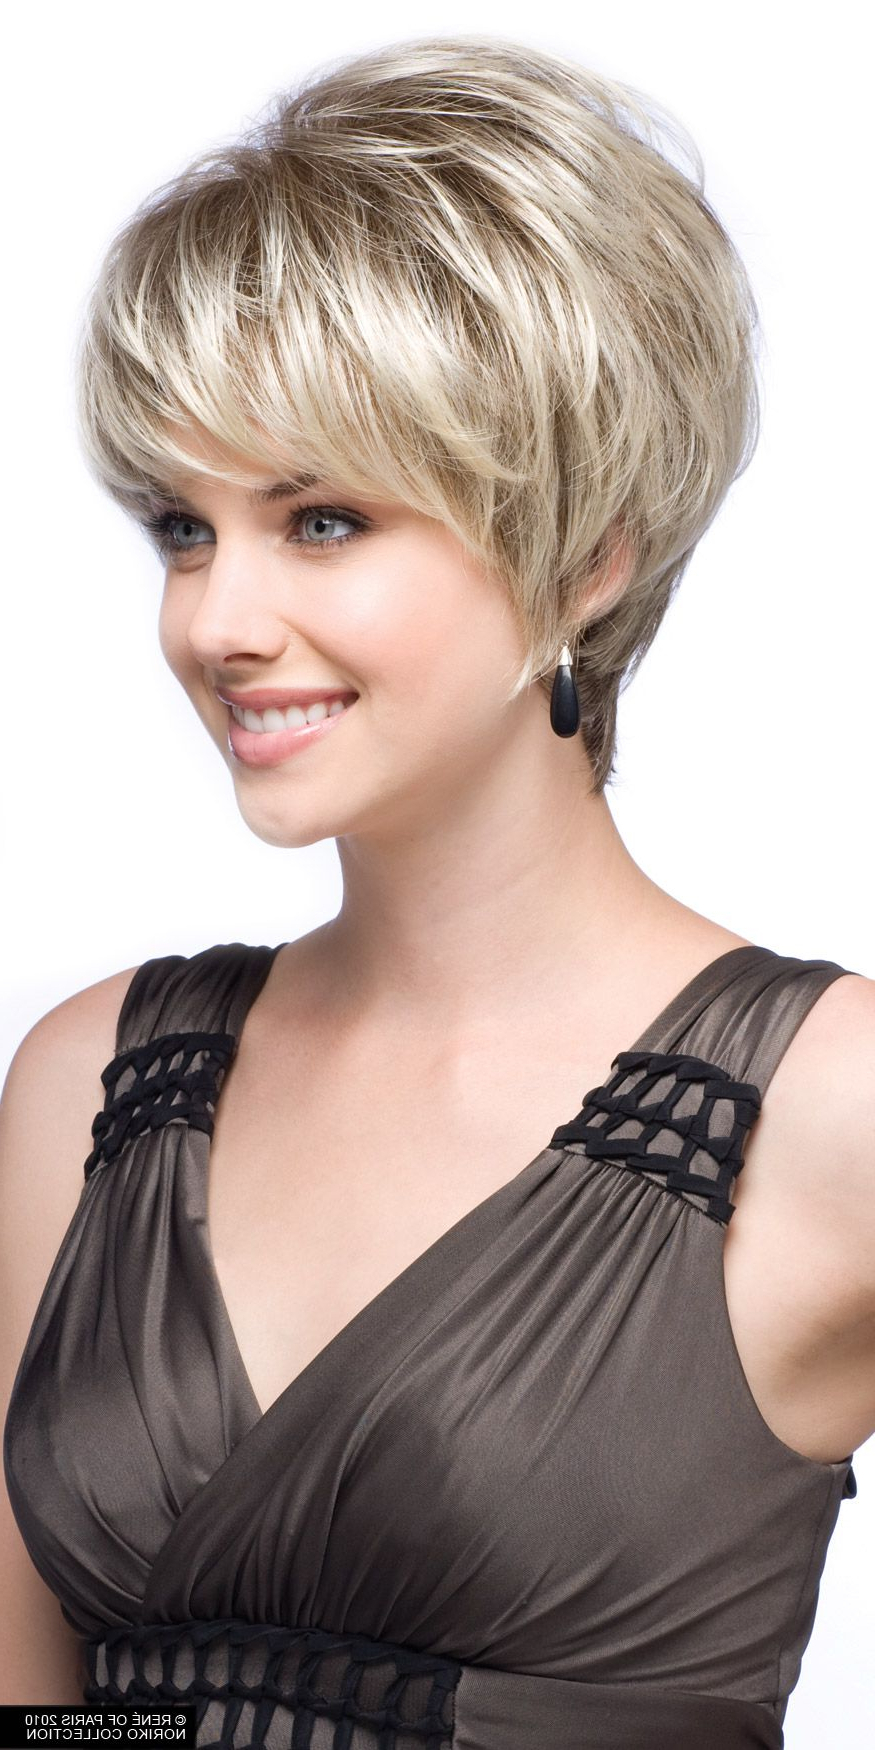 Wispy Short Wedge Haircuts | Noriko | Image Group London | Hair Did Throughout Wispy Short Haircuts (View 25 of 25)